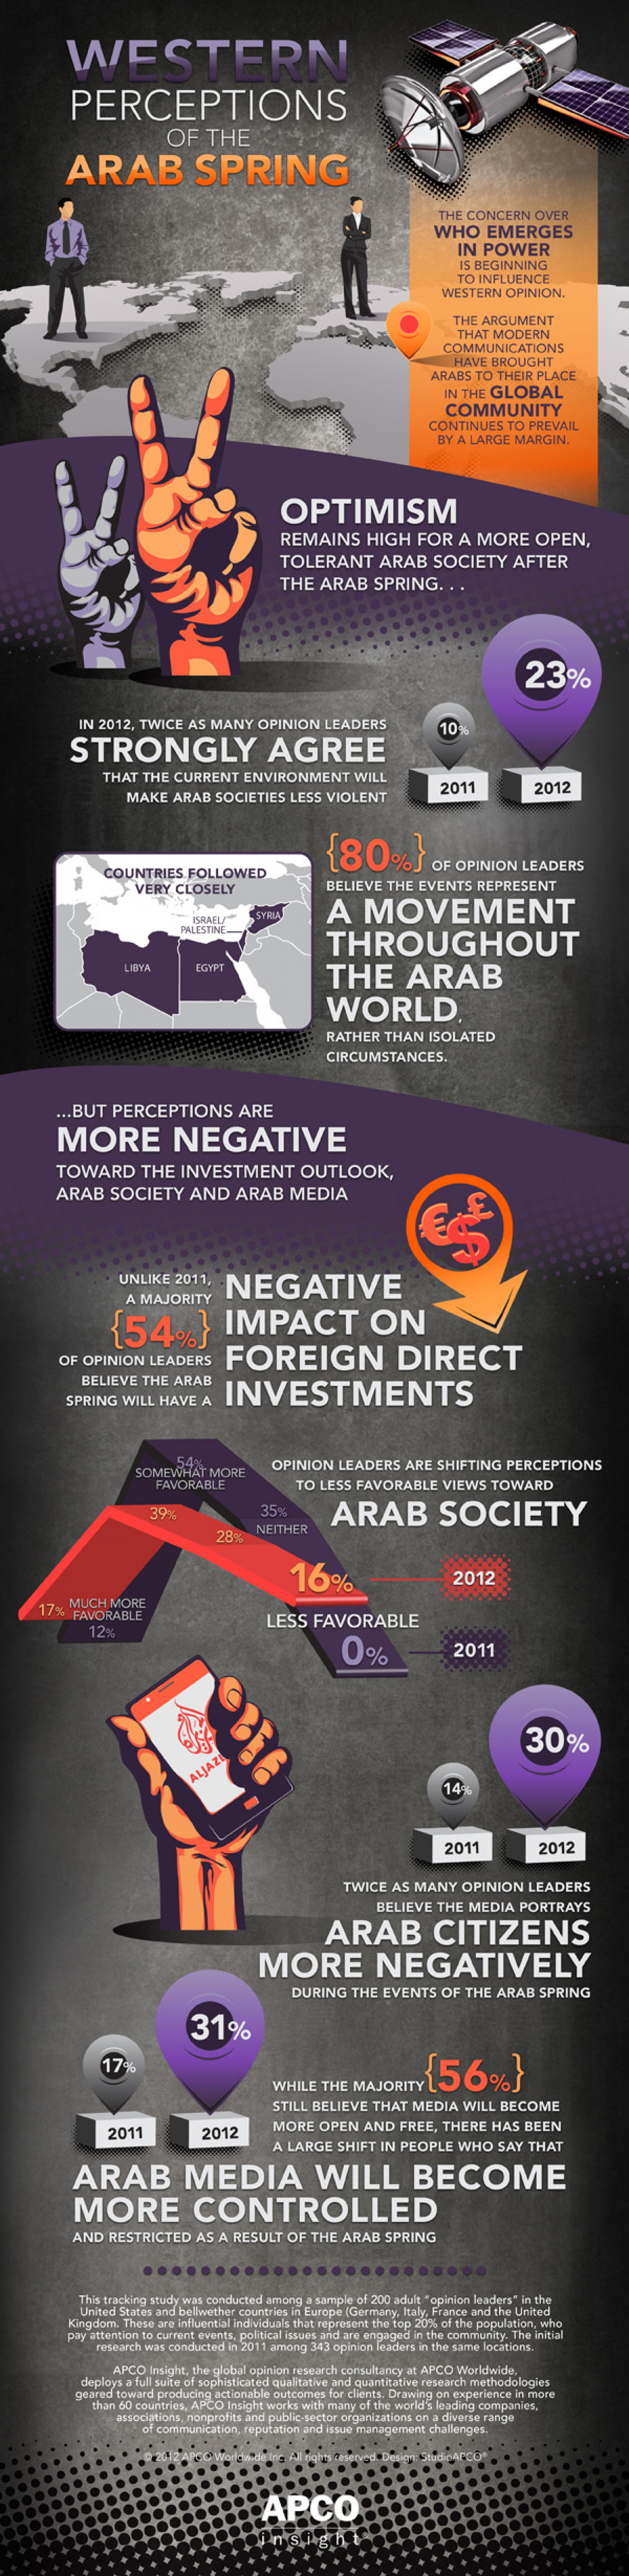 Western Perceptions of the Arab Spring Infographic